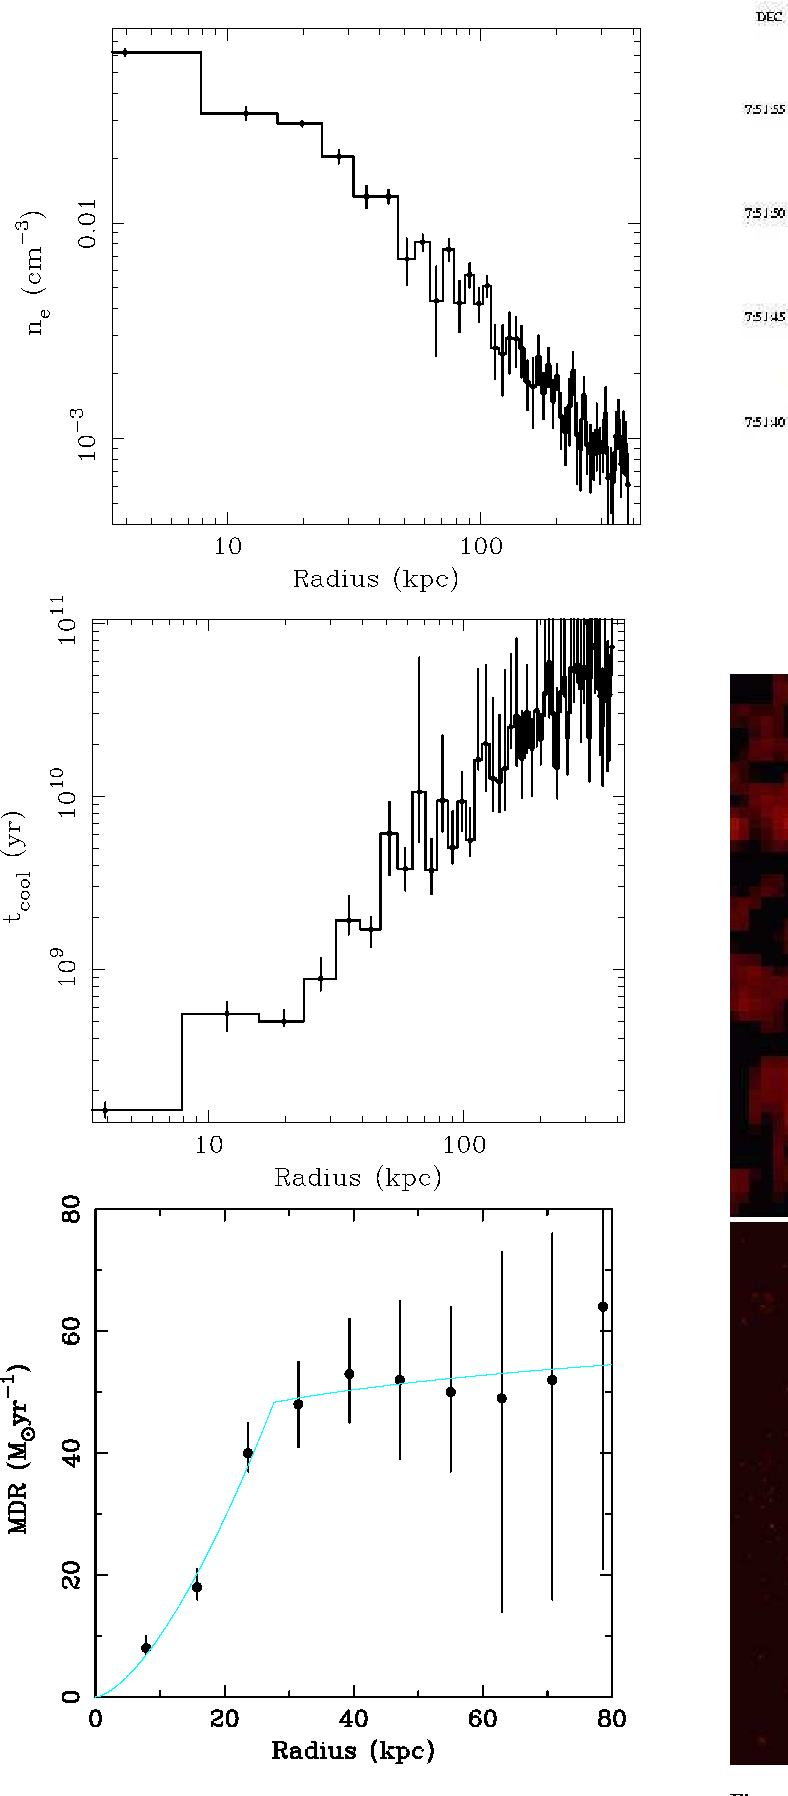 Figure 4. The slightly smoothed 0.5 − 2 keV Chandra image of the cluster  emission